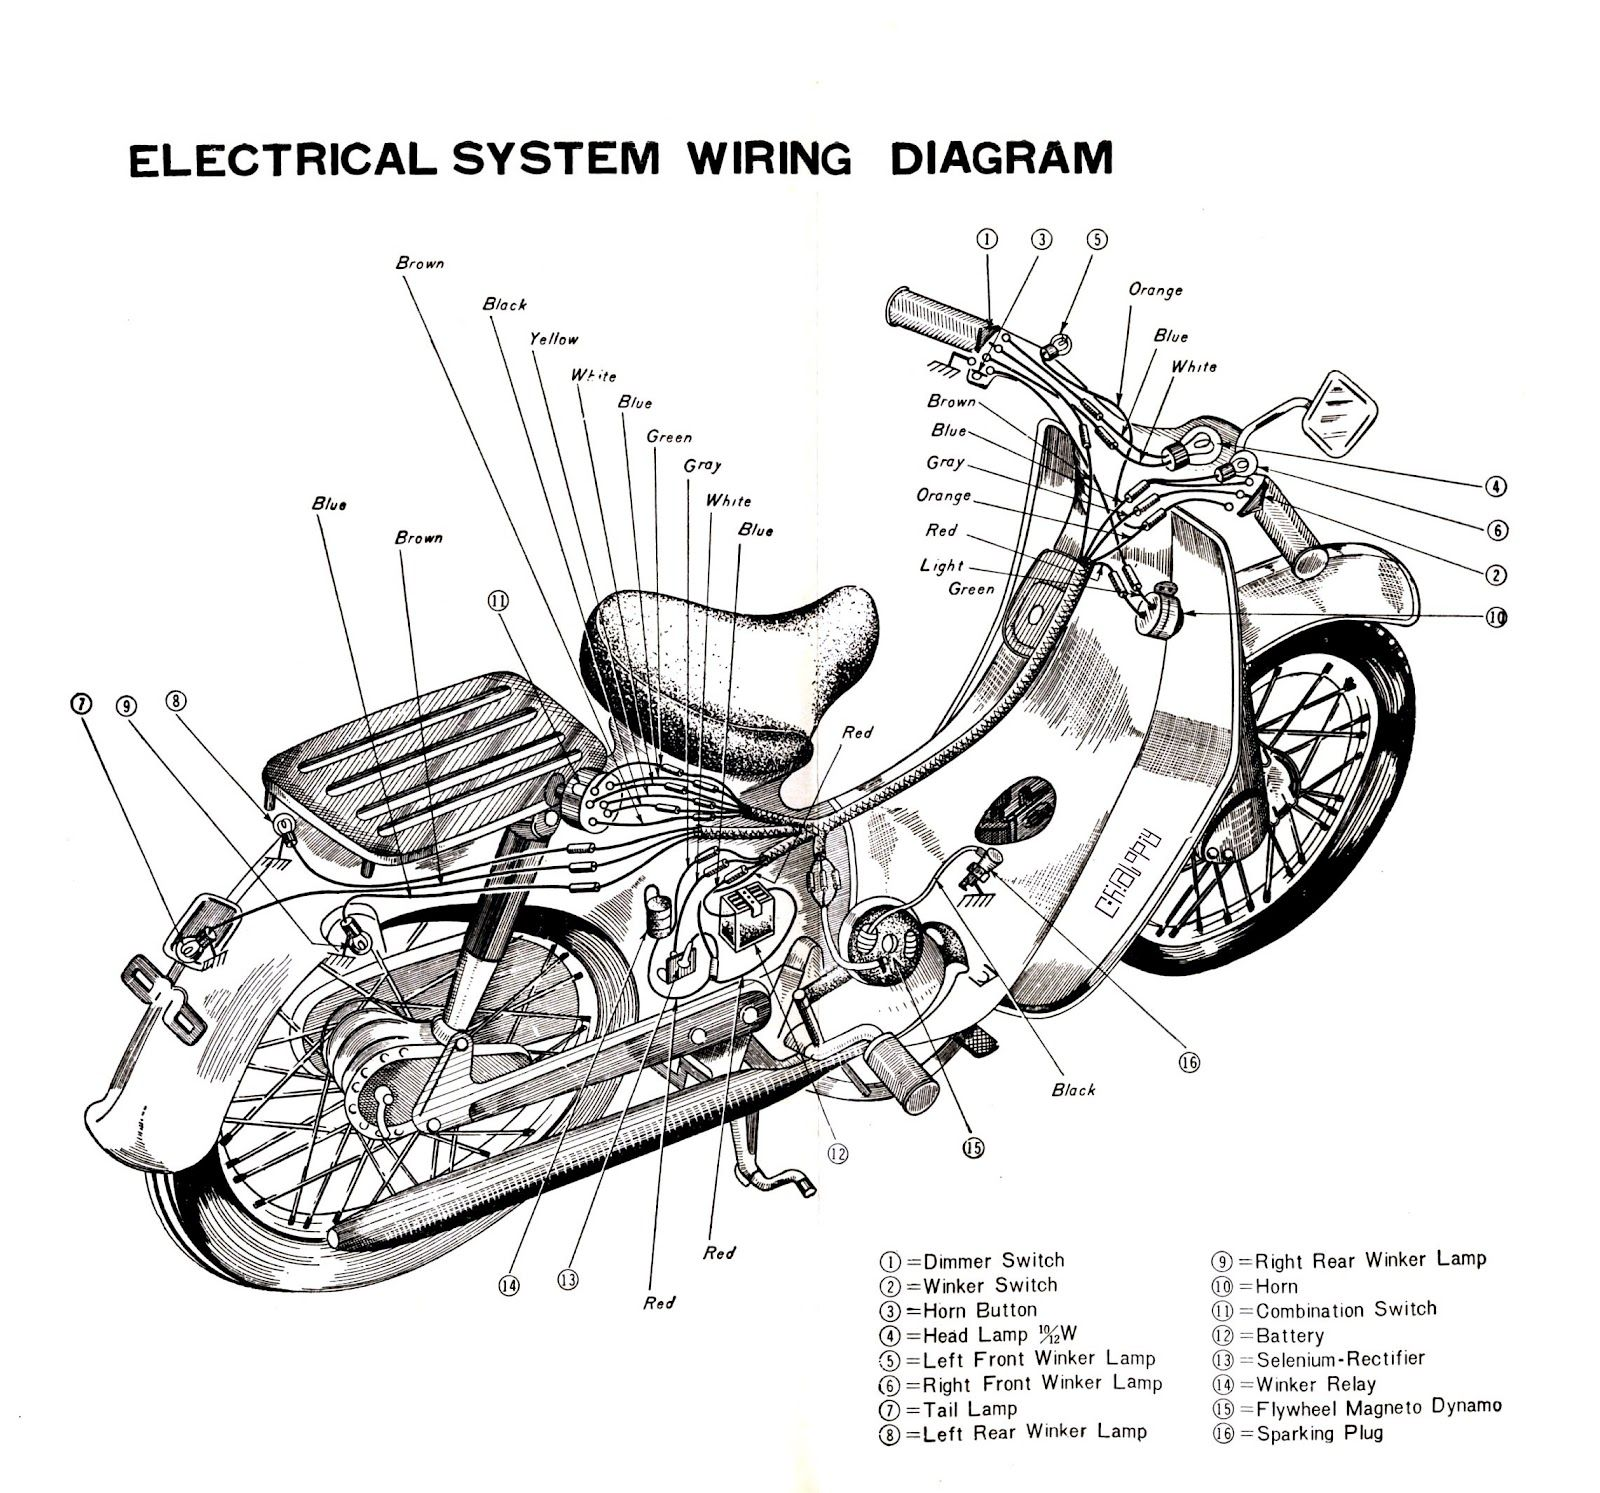 Vintage Motorcycle Wiring Diagram | Wiring Liry on motorcycle headlight diagram, motorcycle gas tank lock, motorcycle shifter diagram, motorcycle tow hitches, motorcycle battery diagram, motorcycle magneto diagram, motorcycle foot controls diagram, motorcycle harness diagram, electric motorcycle diagram, motorcycle relay diagram, motorcycle body diagram, motorcycle brakes diagram, schematic diagram, motorcycle fuel reserve, motorcycle stator diagram, motorcycle carb diagram, motorcycle wire color codes, motorcycle motors diagram, motorcycle coil diagram, motorcycle maintenance diagram,